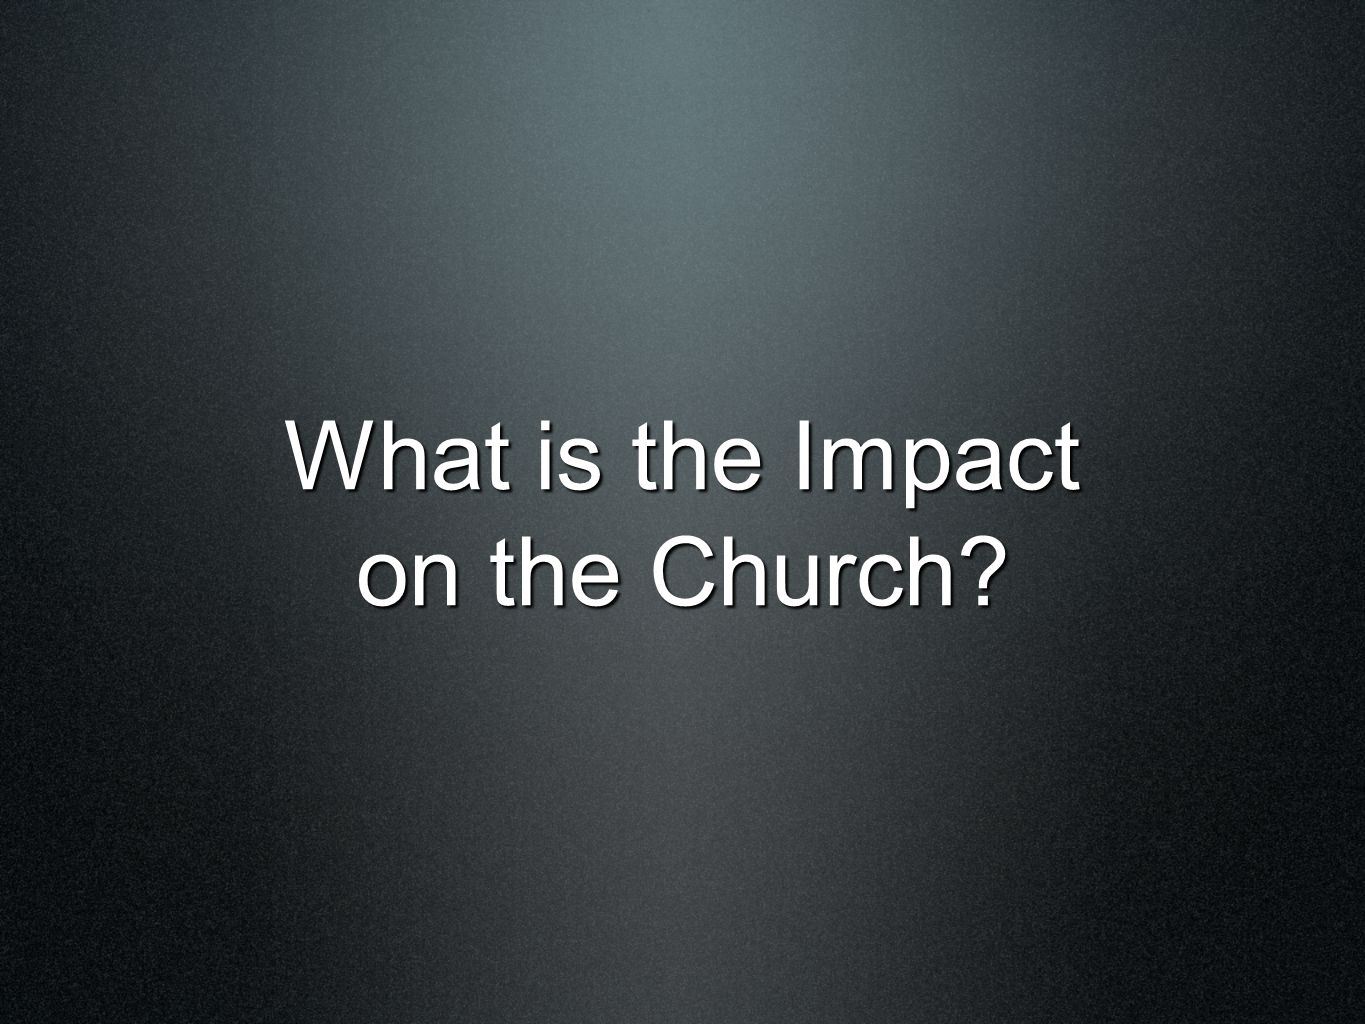 What is the Impact on the Church?